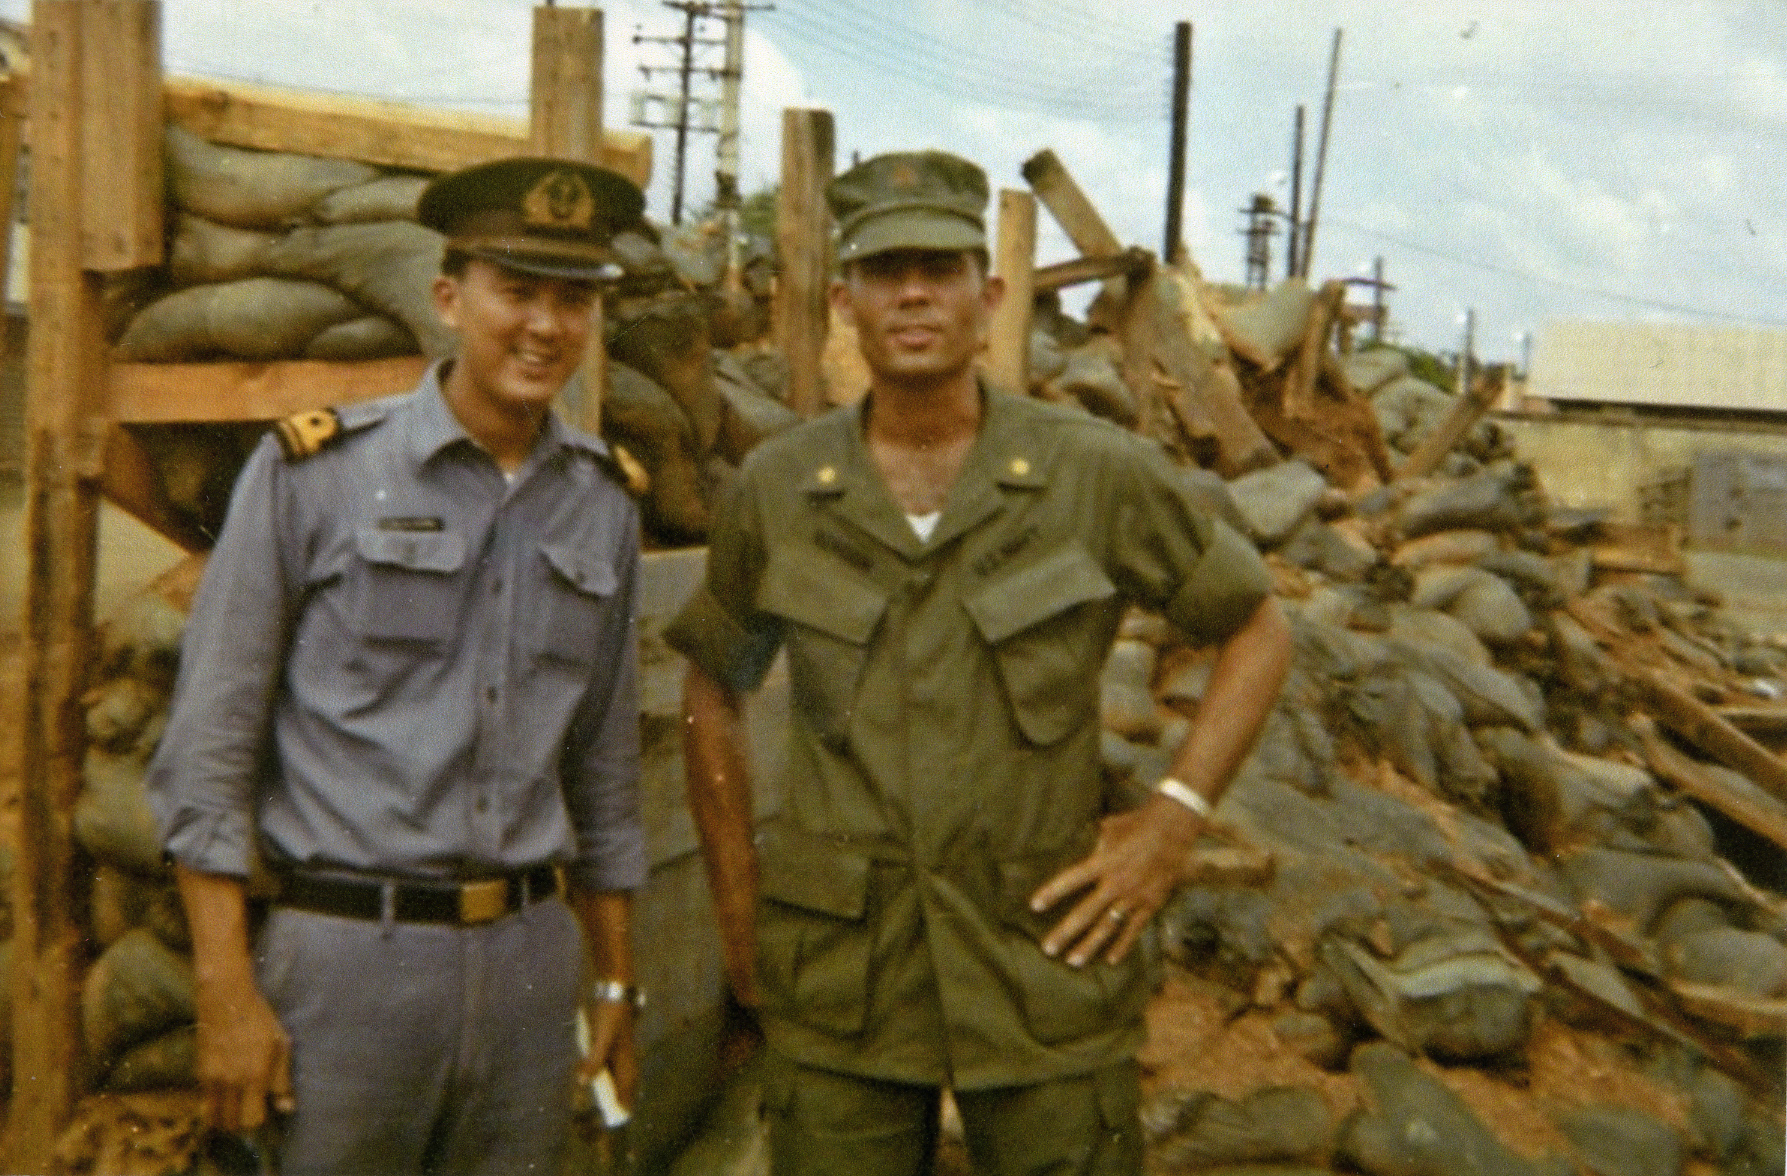 Lieutenant Commander Benson with RVN Navy counterpart Nha Be June 1971